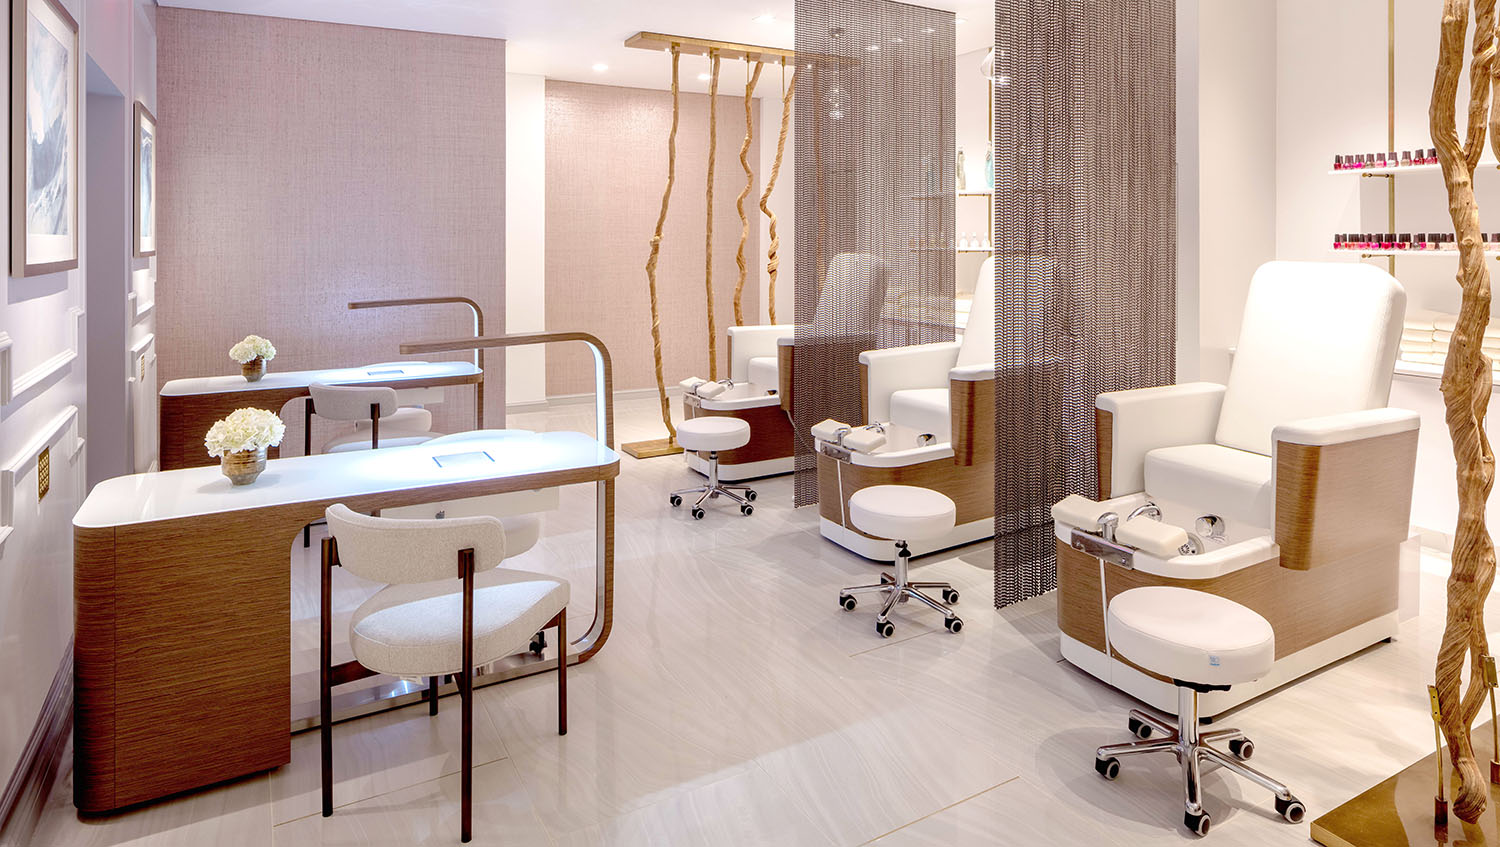 The nail salon offers multiple mani and pedi stations.